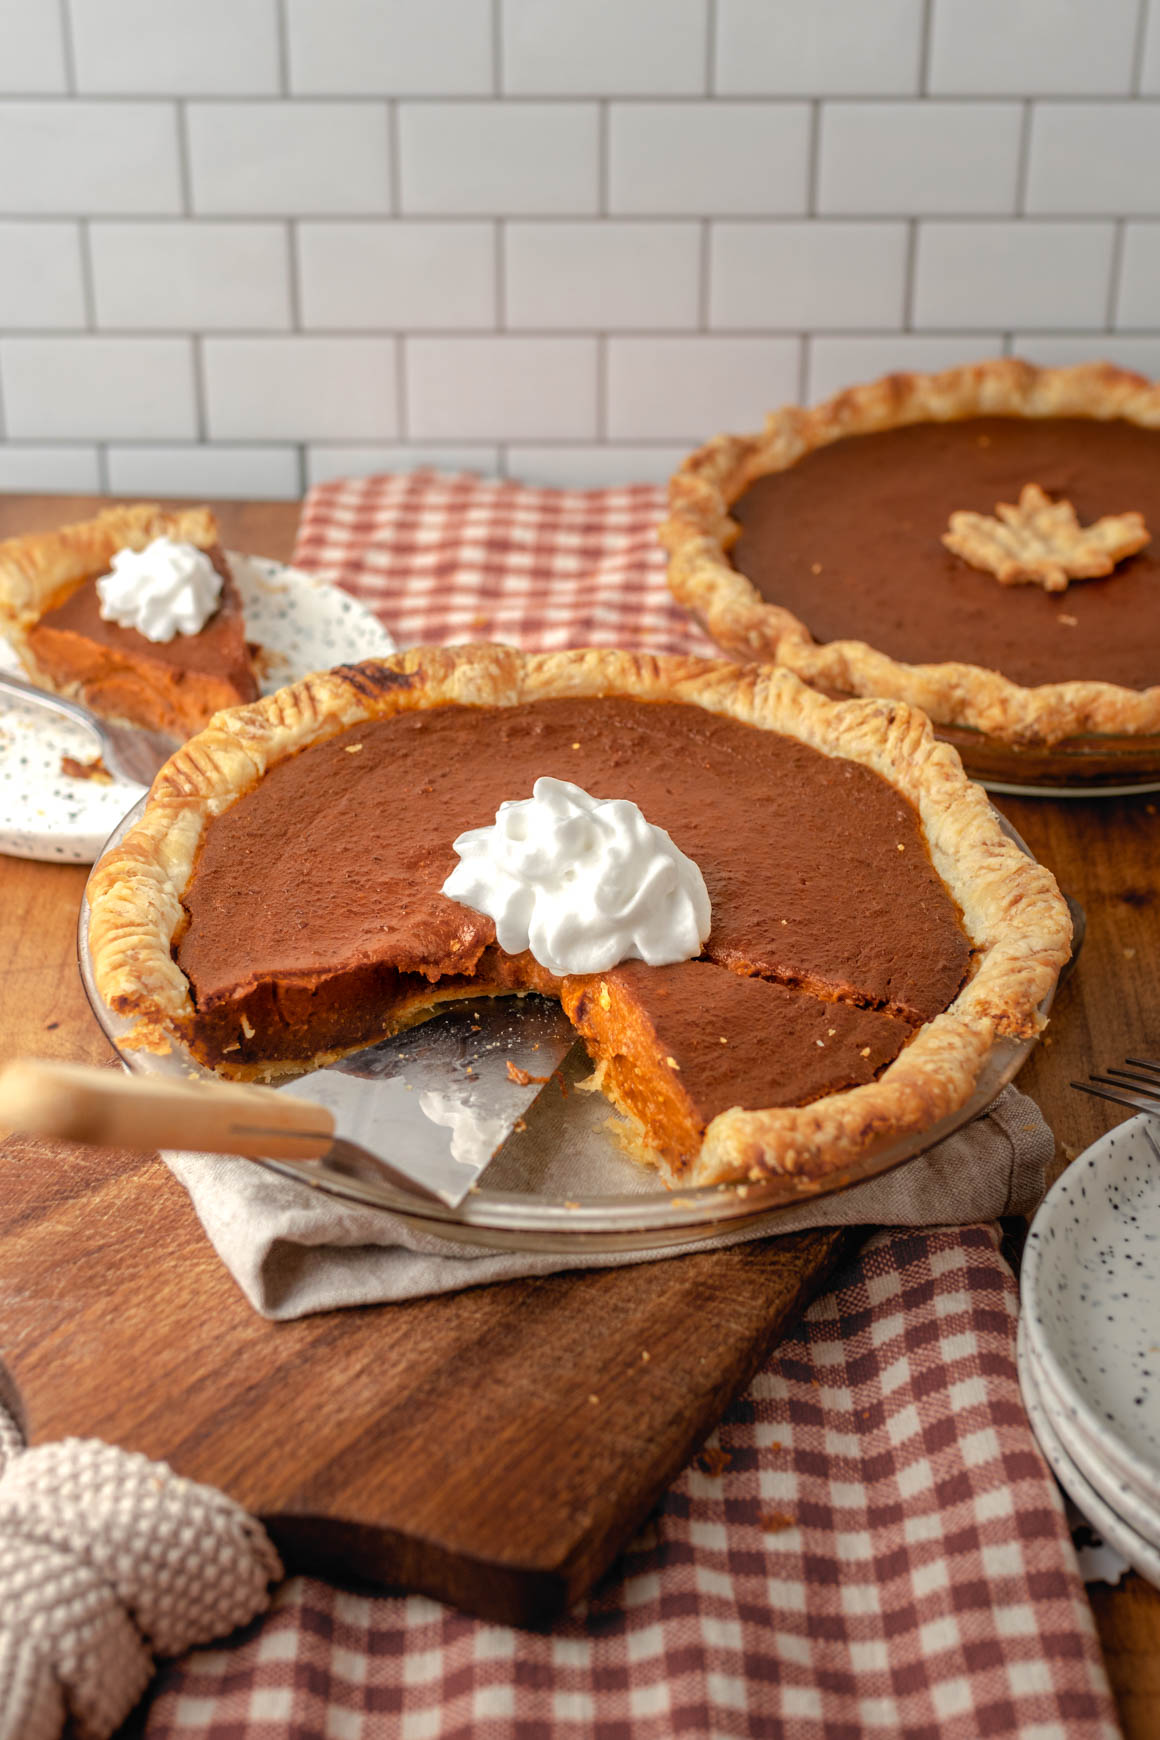 Full pumpkin pie with slices removed